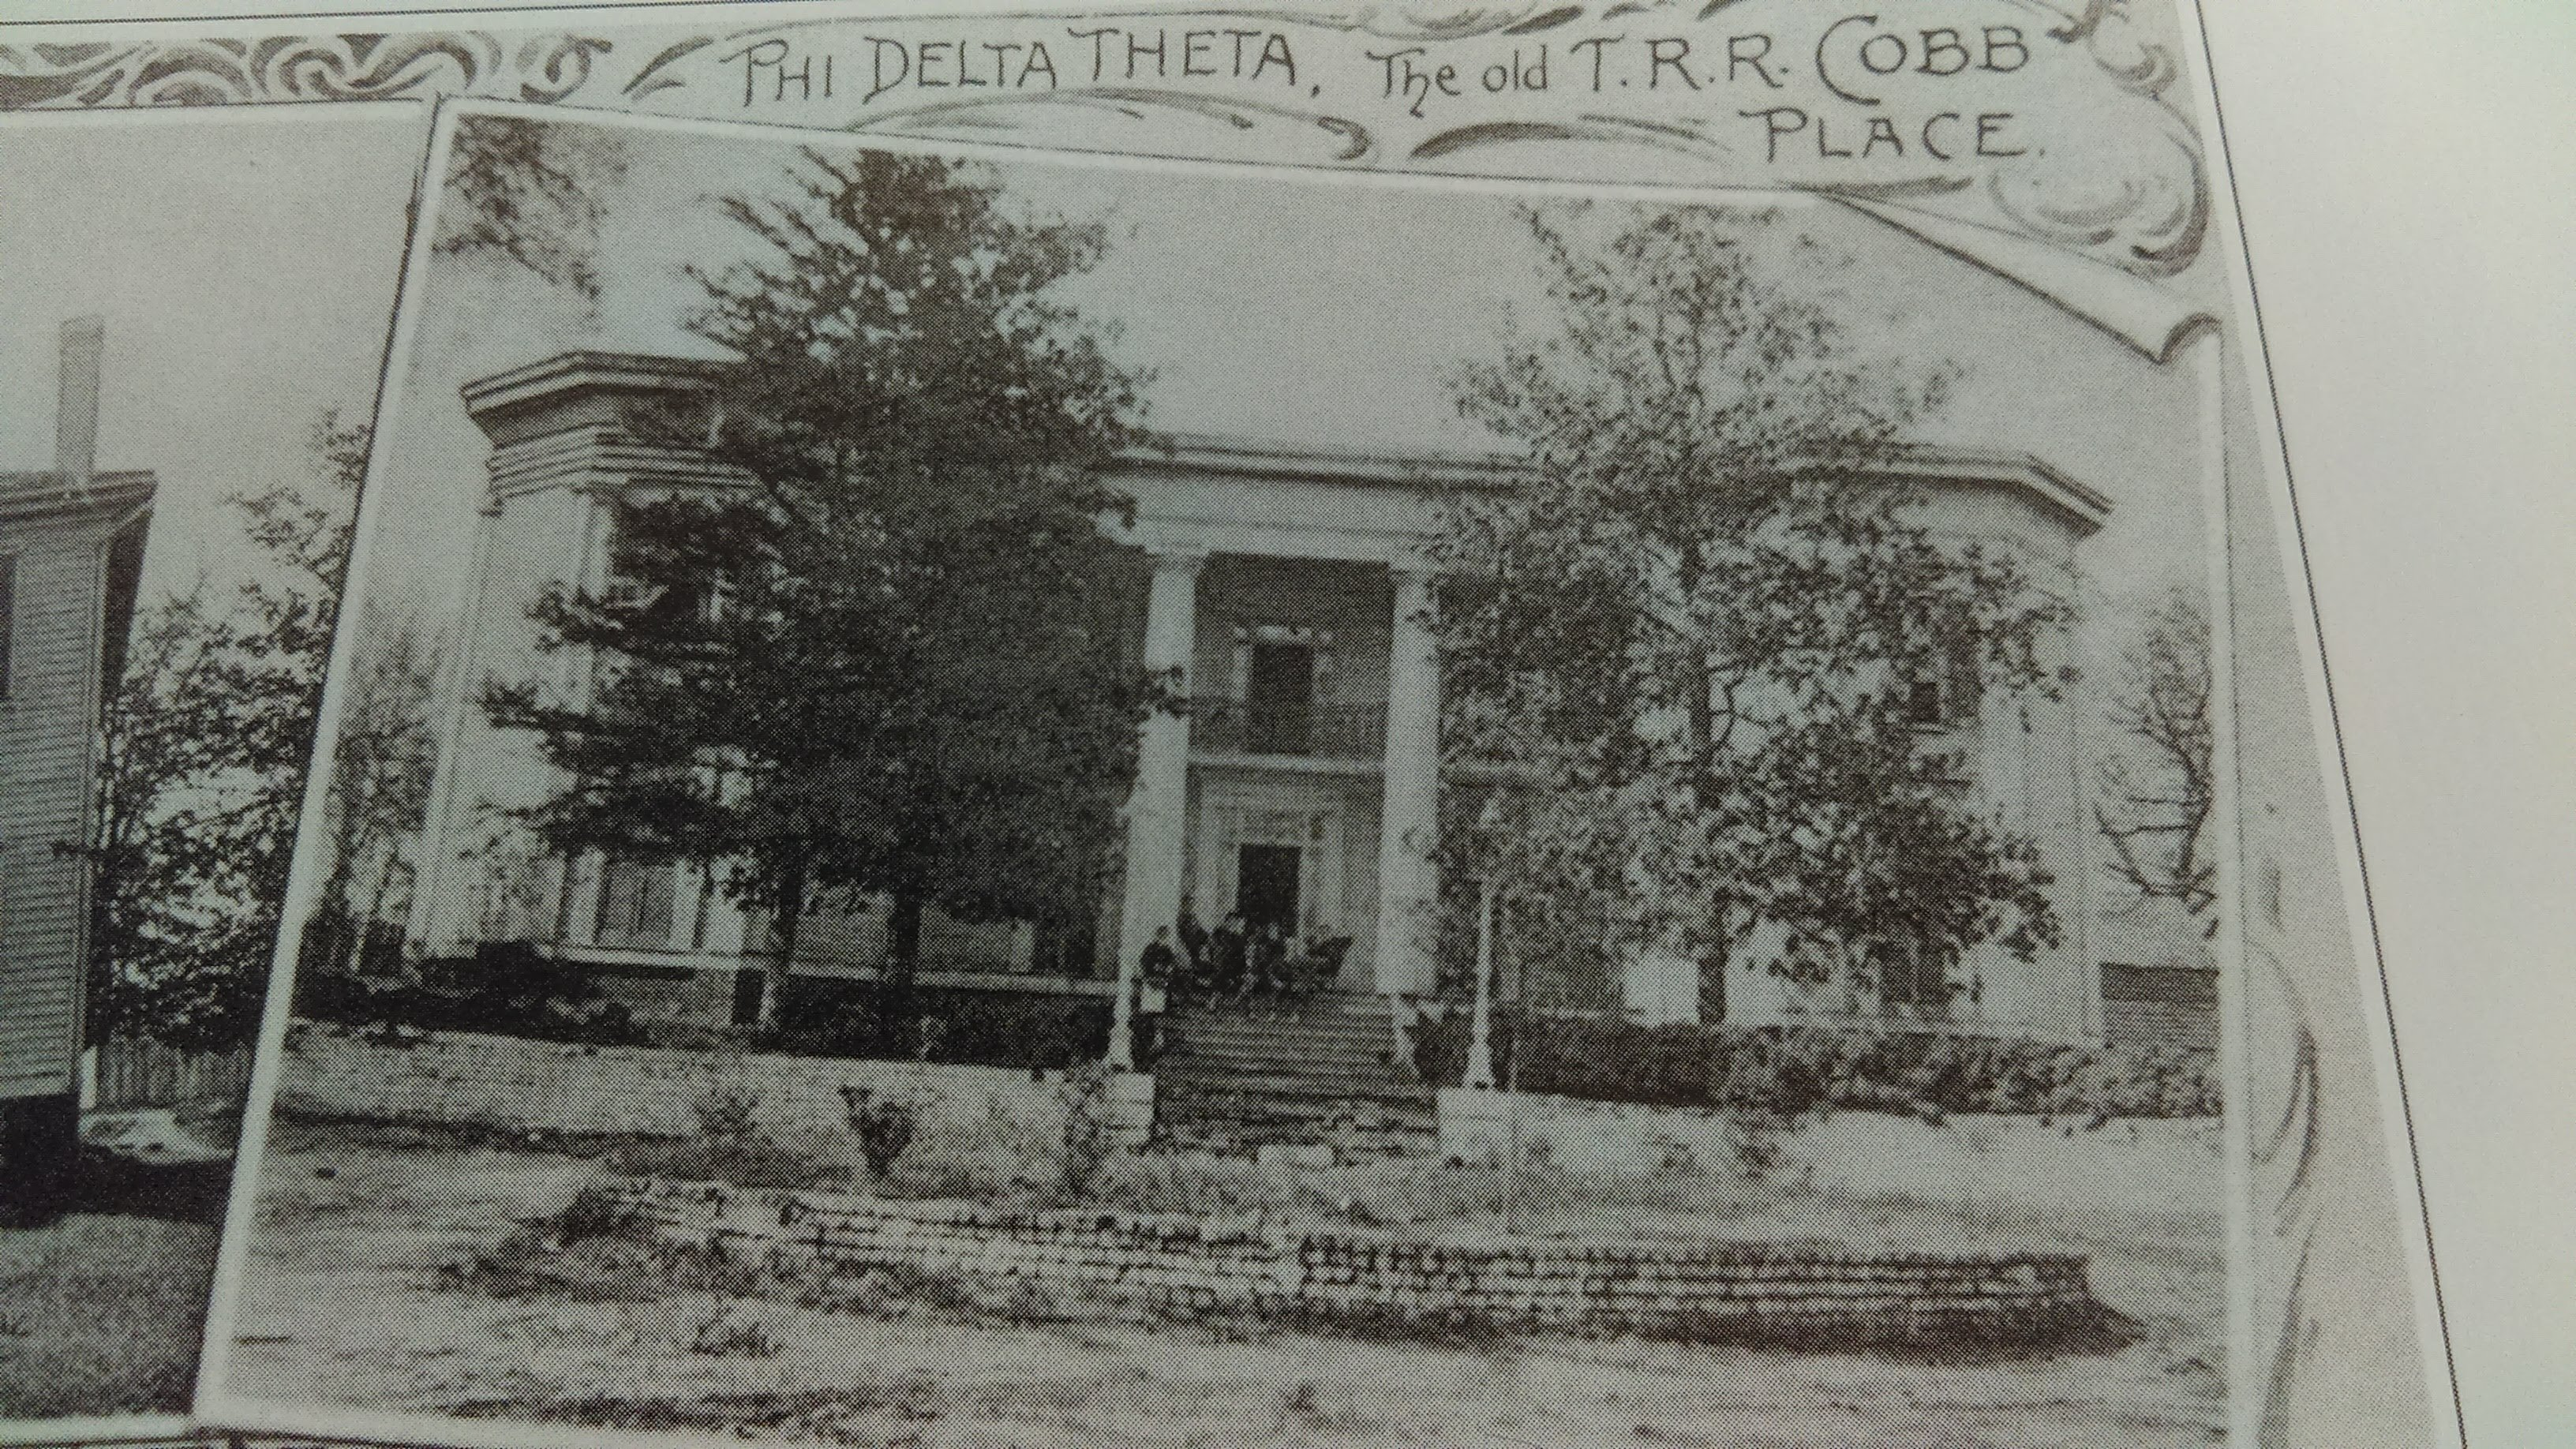 T.R.R. Cobb House around 1900 in use as a Fraternity House for Phi Delta Theta